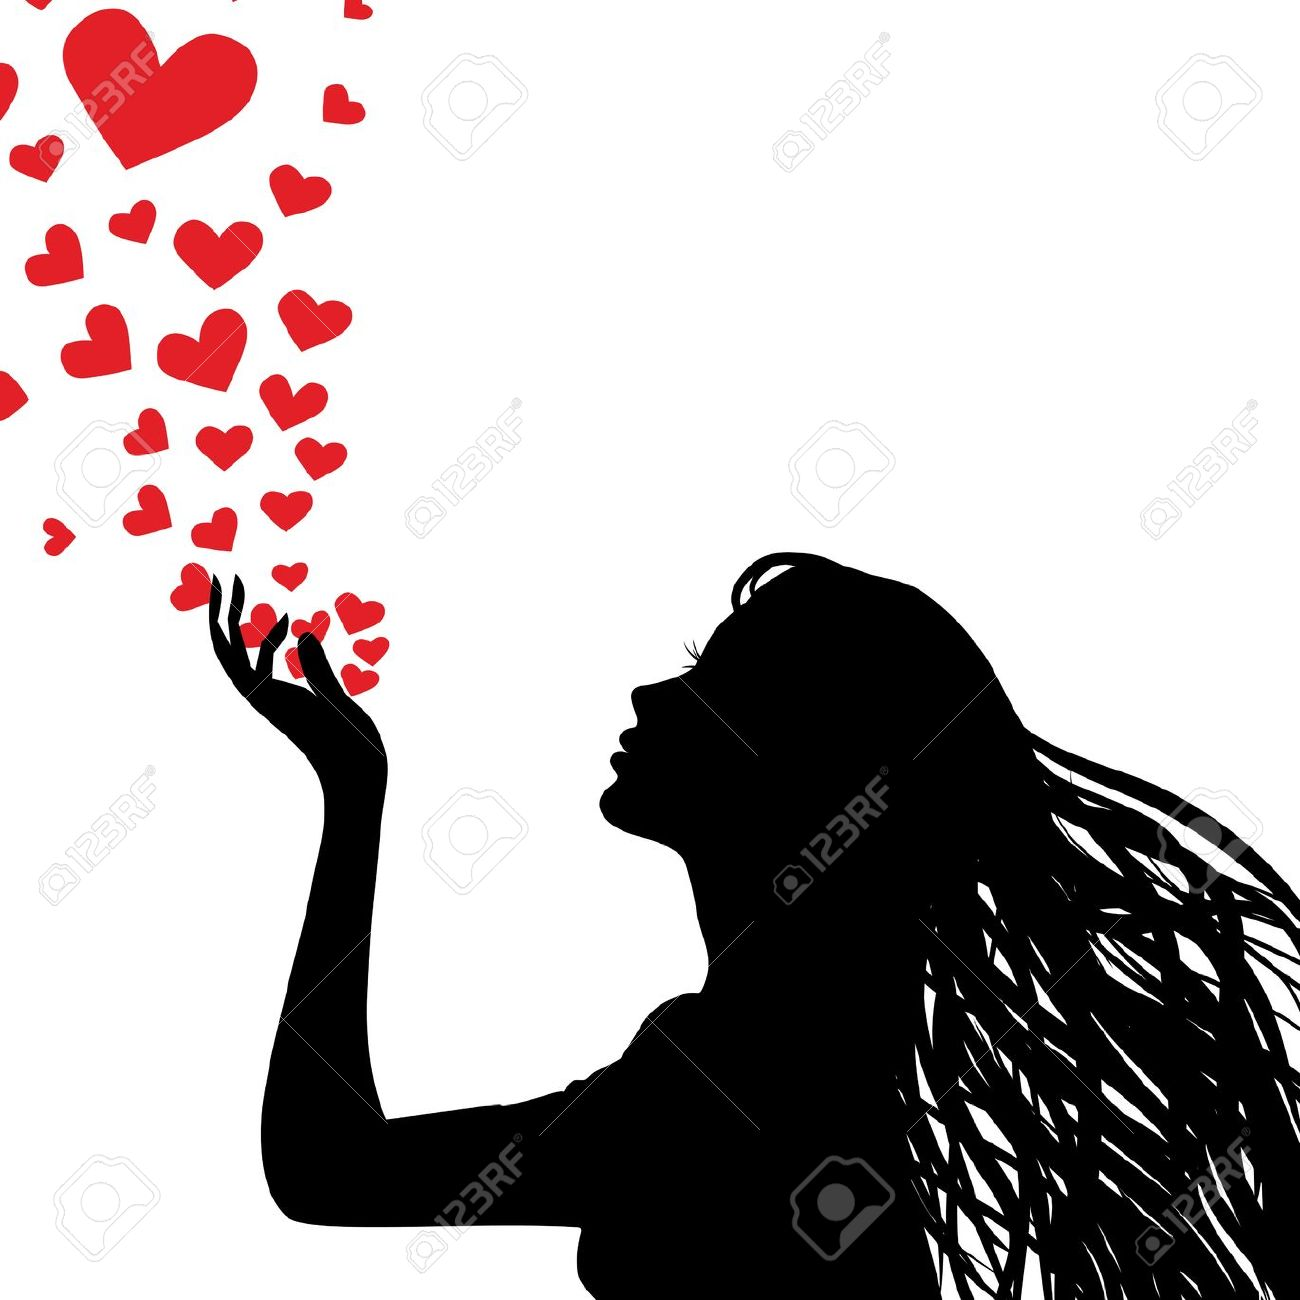 Clipart girl blowing hearts valentine vector royalty free Clipart girl blowing hearts - ClipartFox vector royalty free